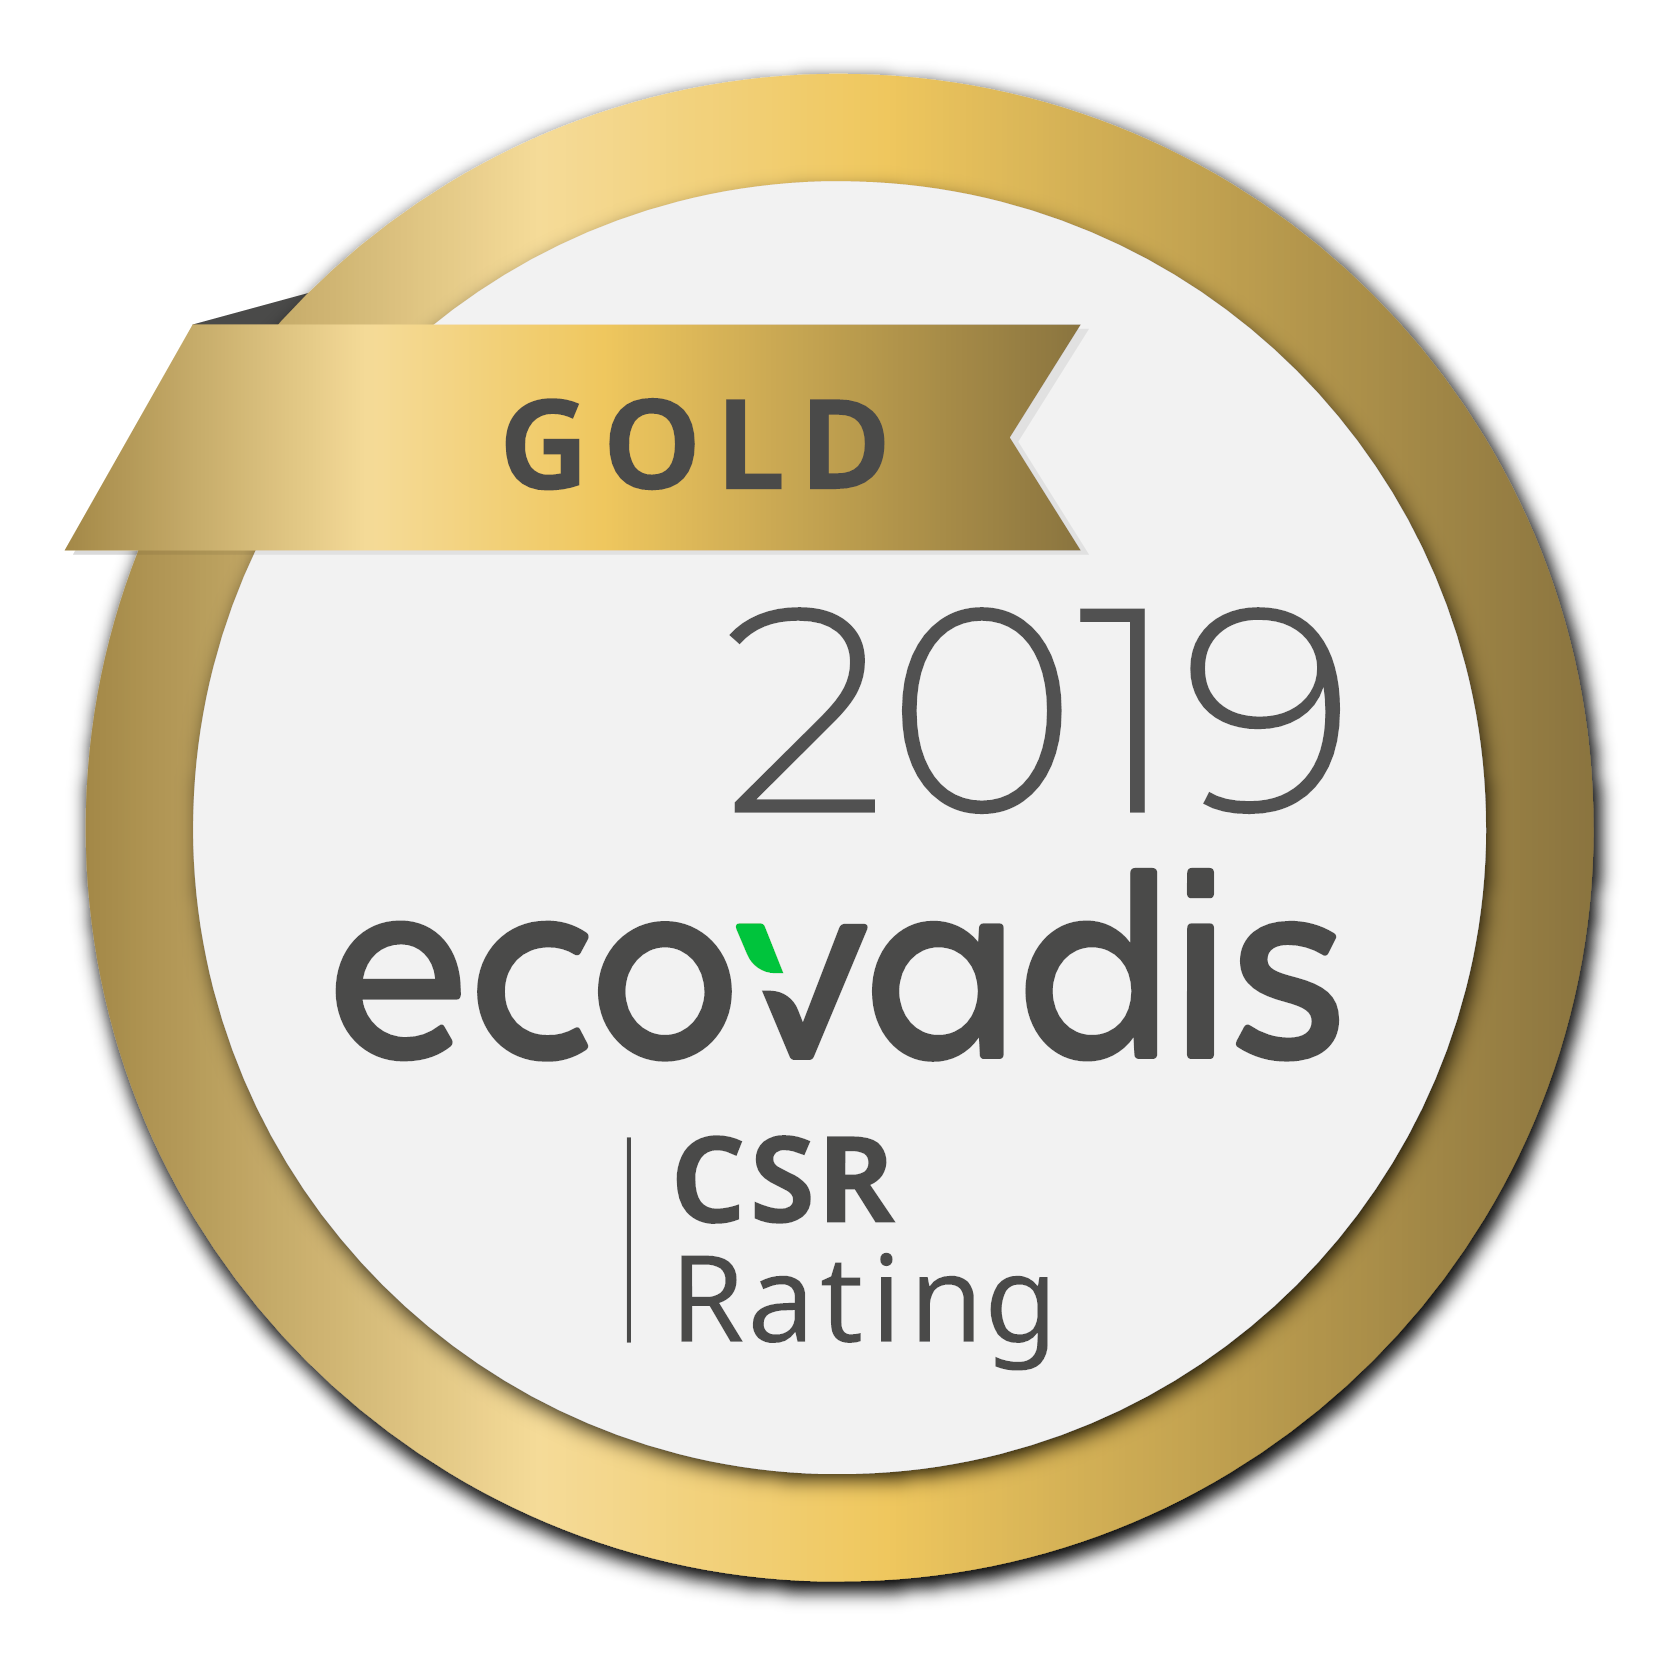 EcoVadis Rating Certificate Gold Medal